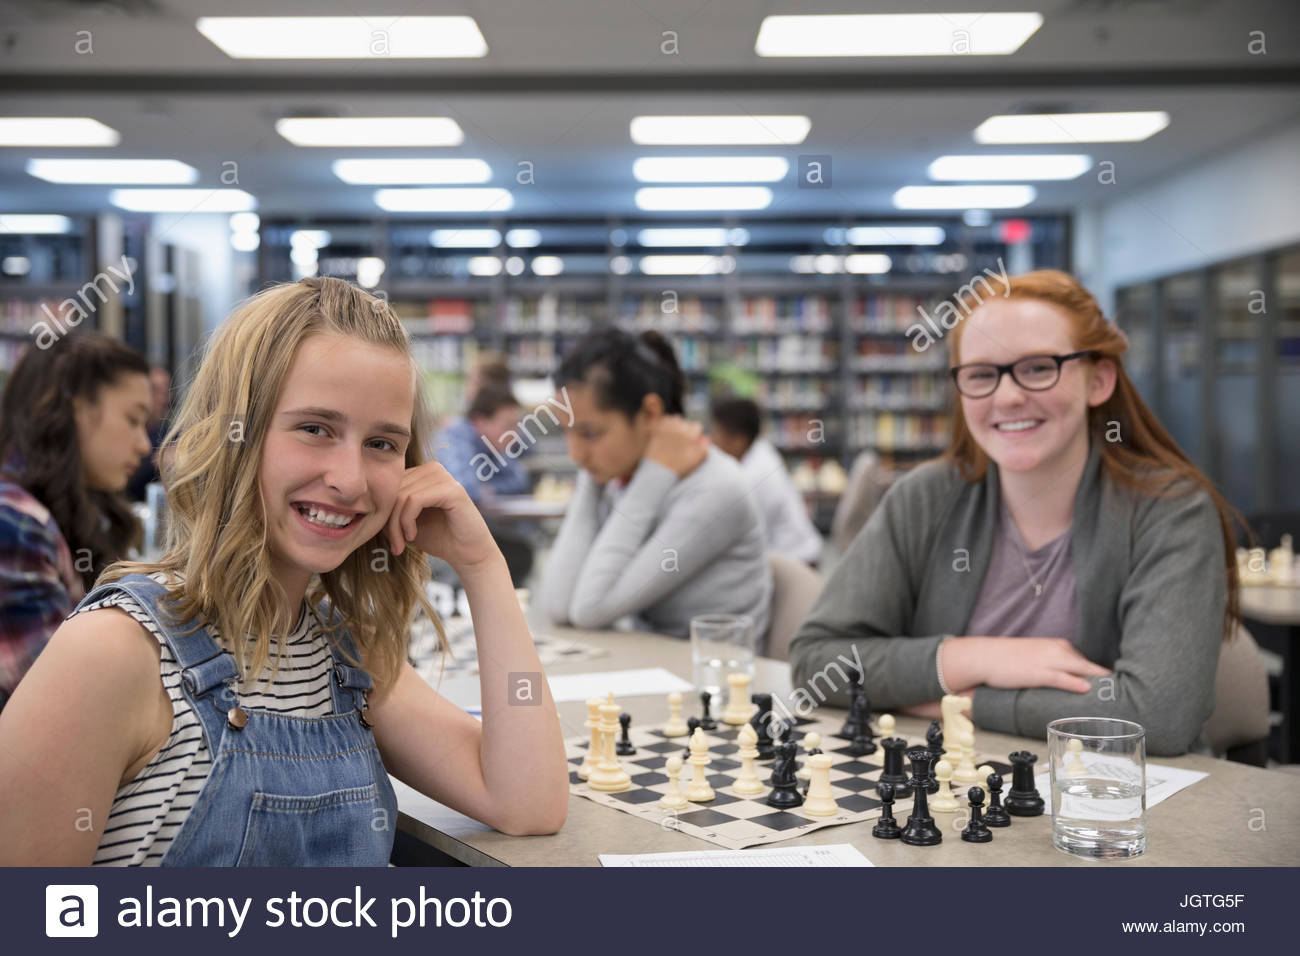 Portrait smiling girl middle school students playing chess in chess club library - Stock Image